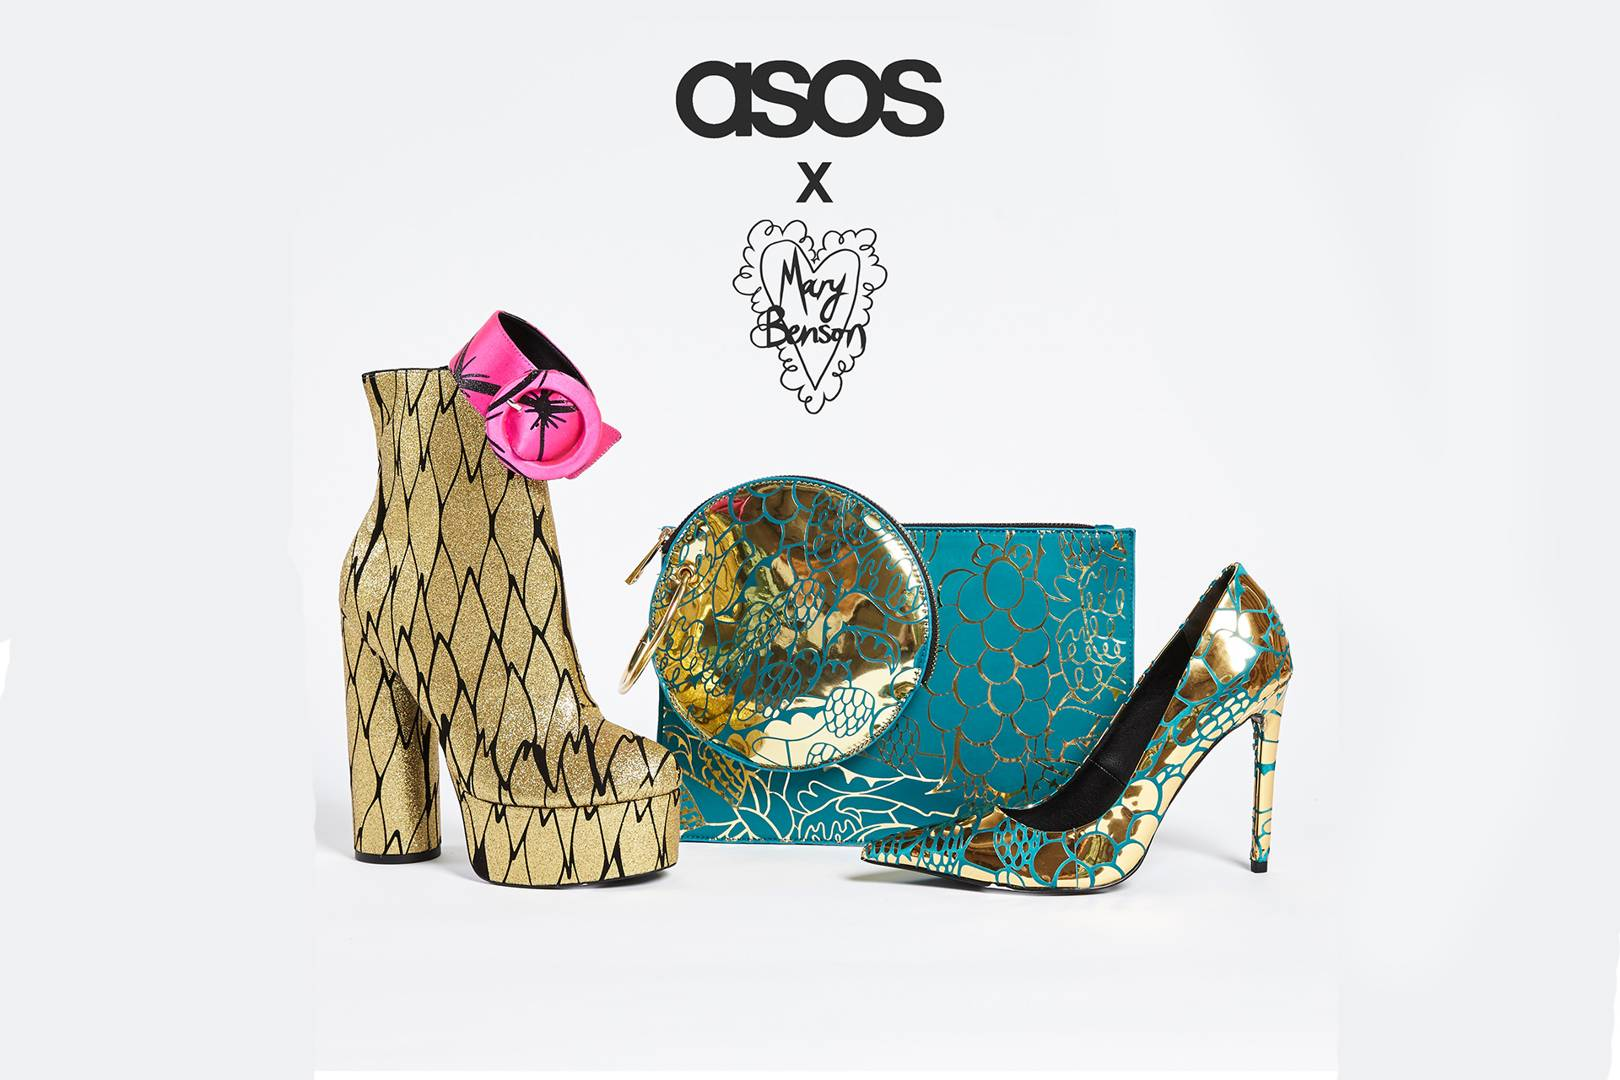 e833acbdc4 Mary Benson Collaborates With ASOS On New Accessories Collection | British  Vogue